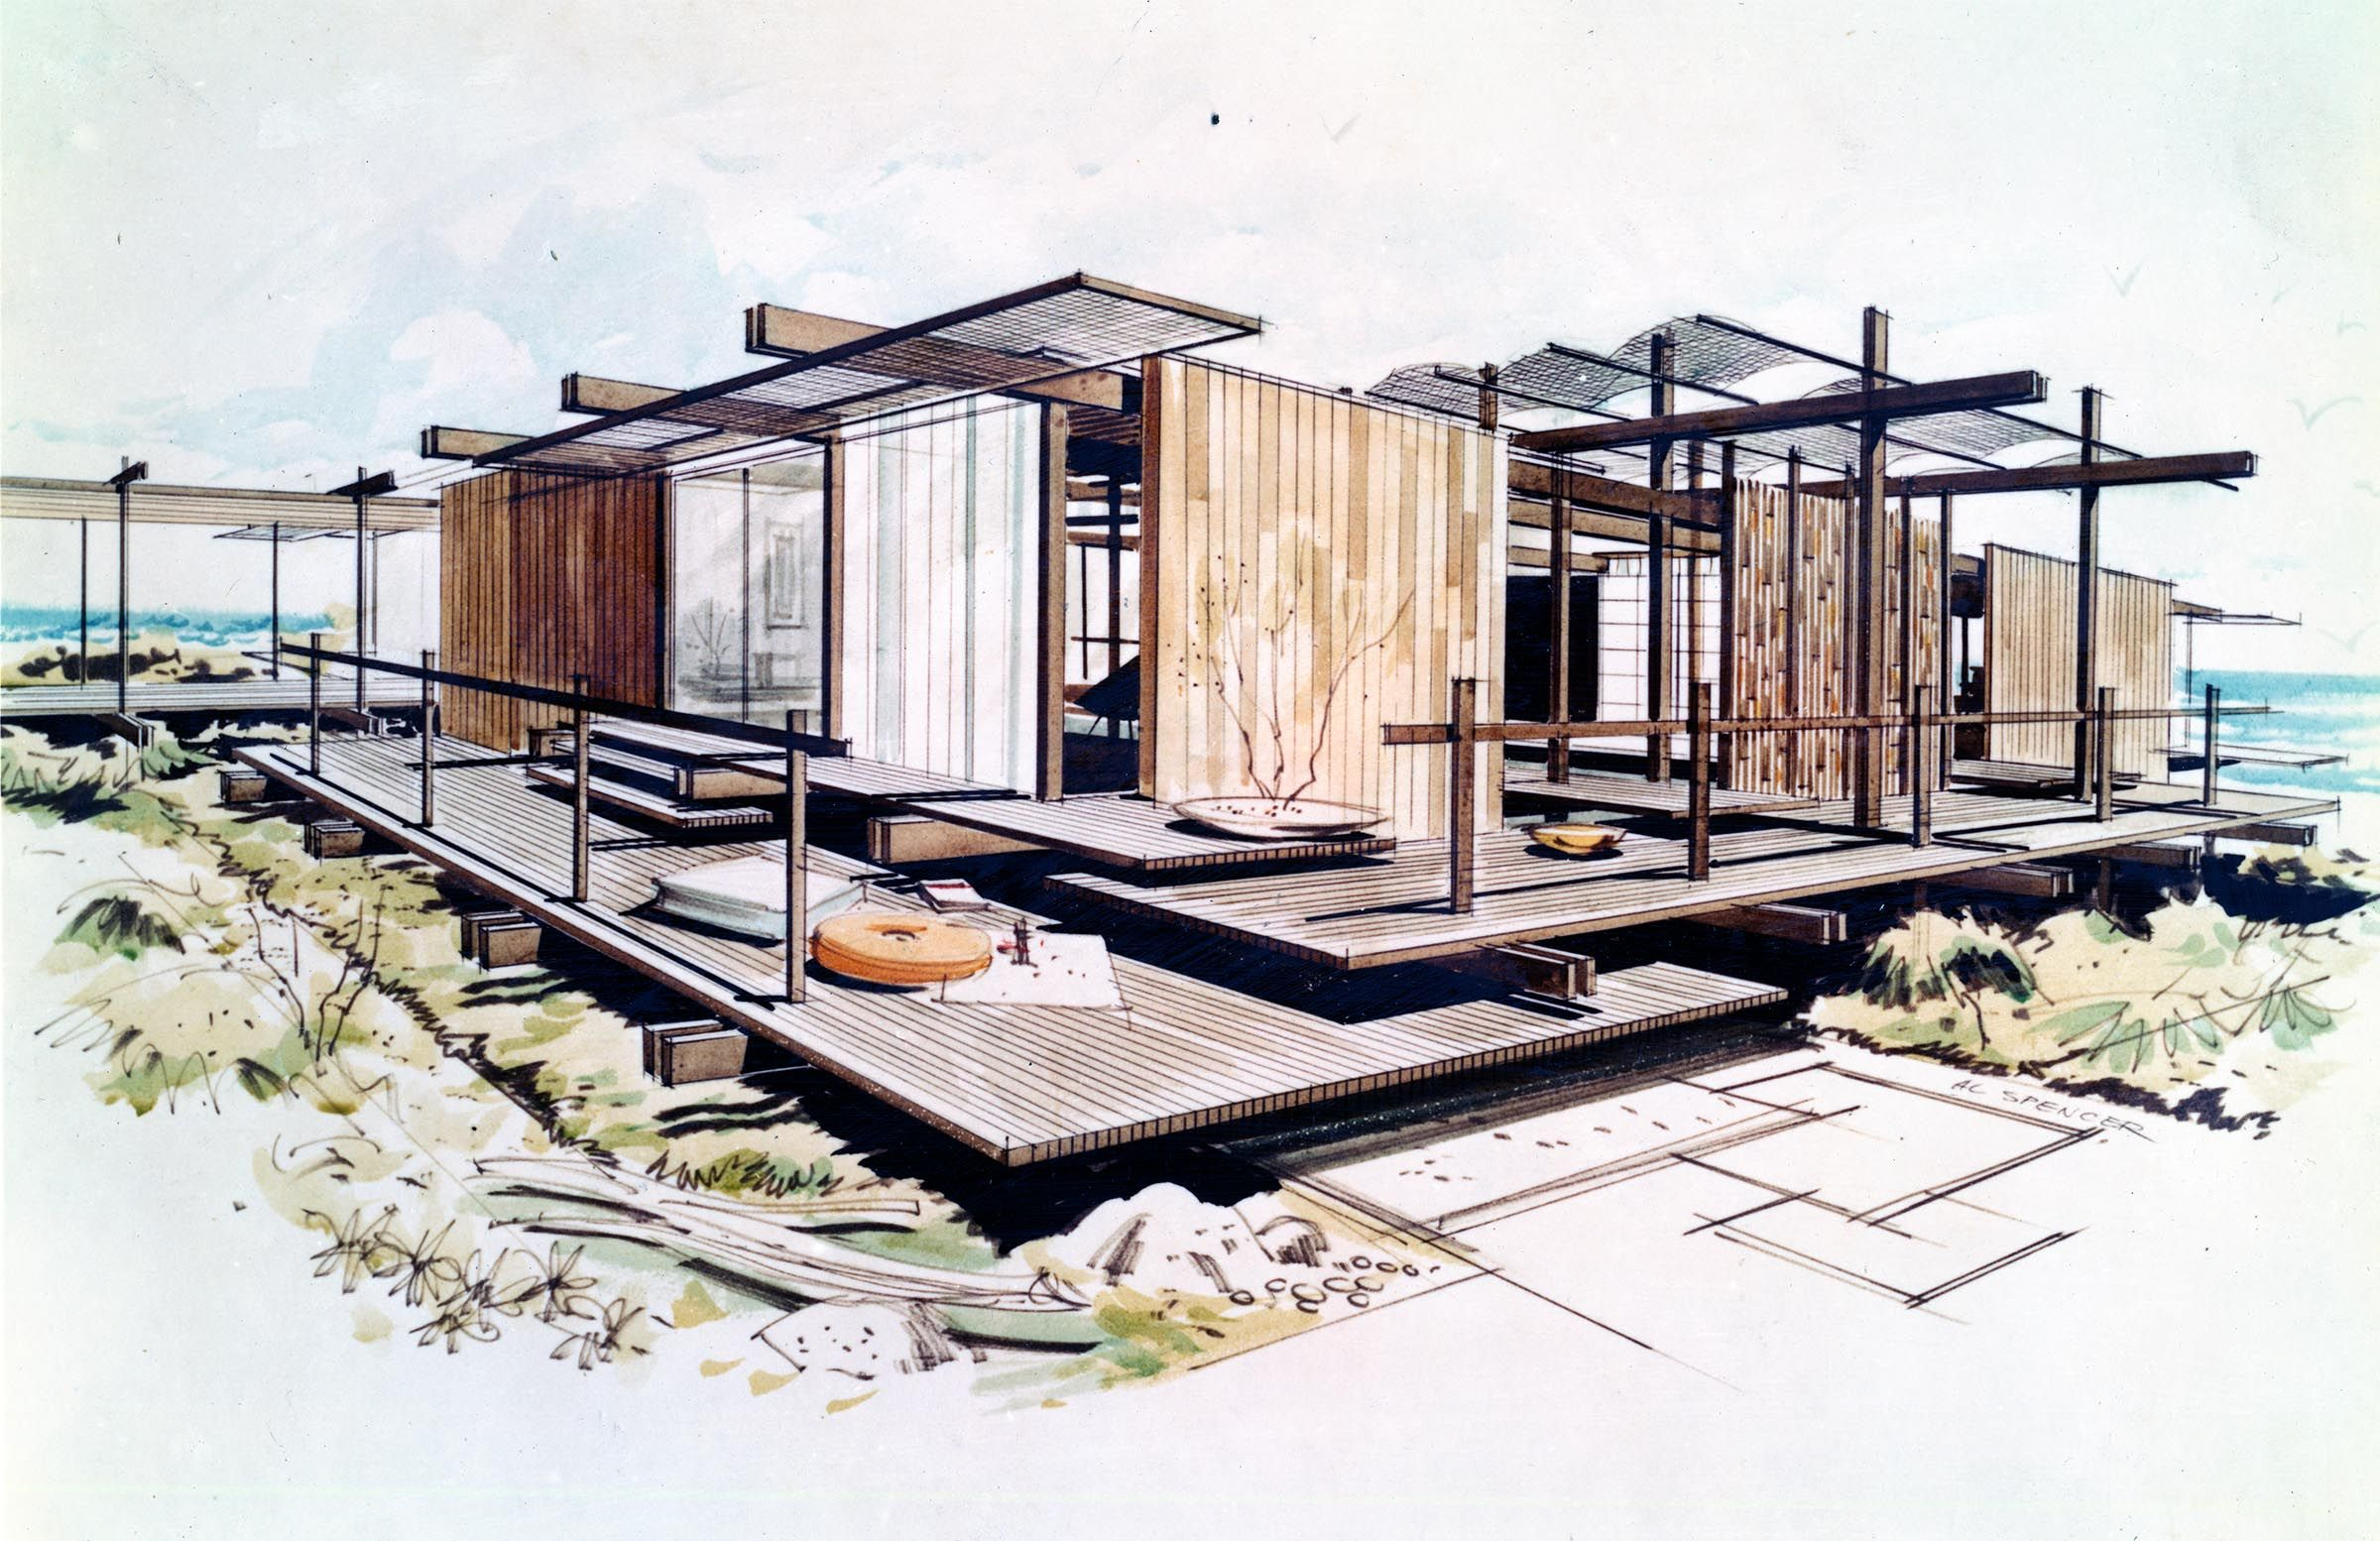 photograph of a drawing by al spencer mounted on board architecture and design collection art design architecture museum university of california - Cool Architecture Drawing